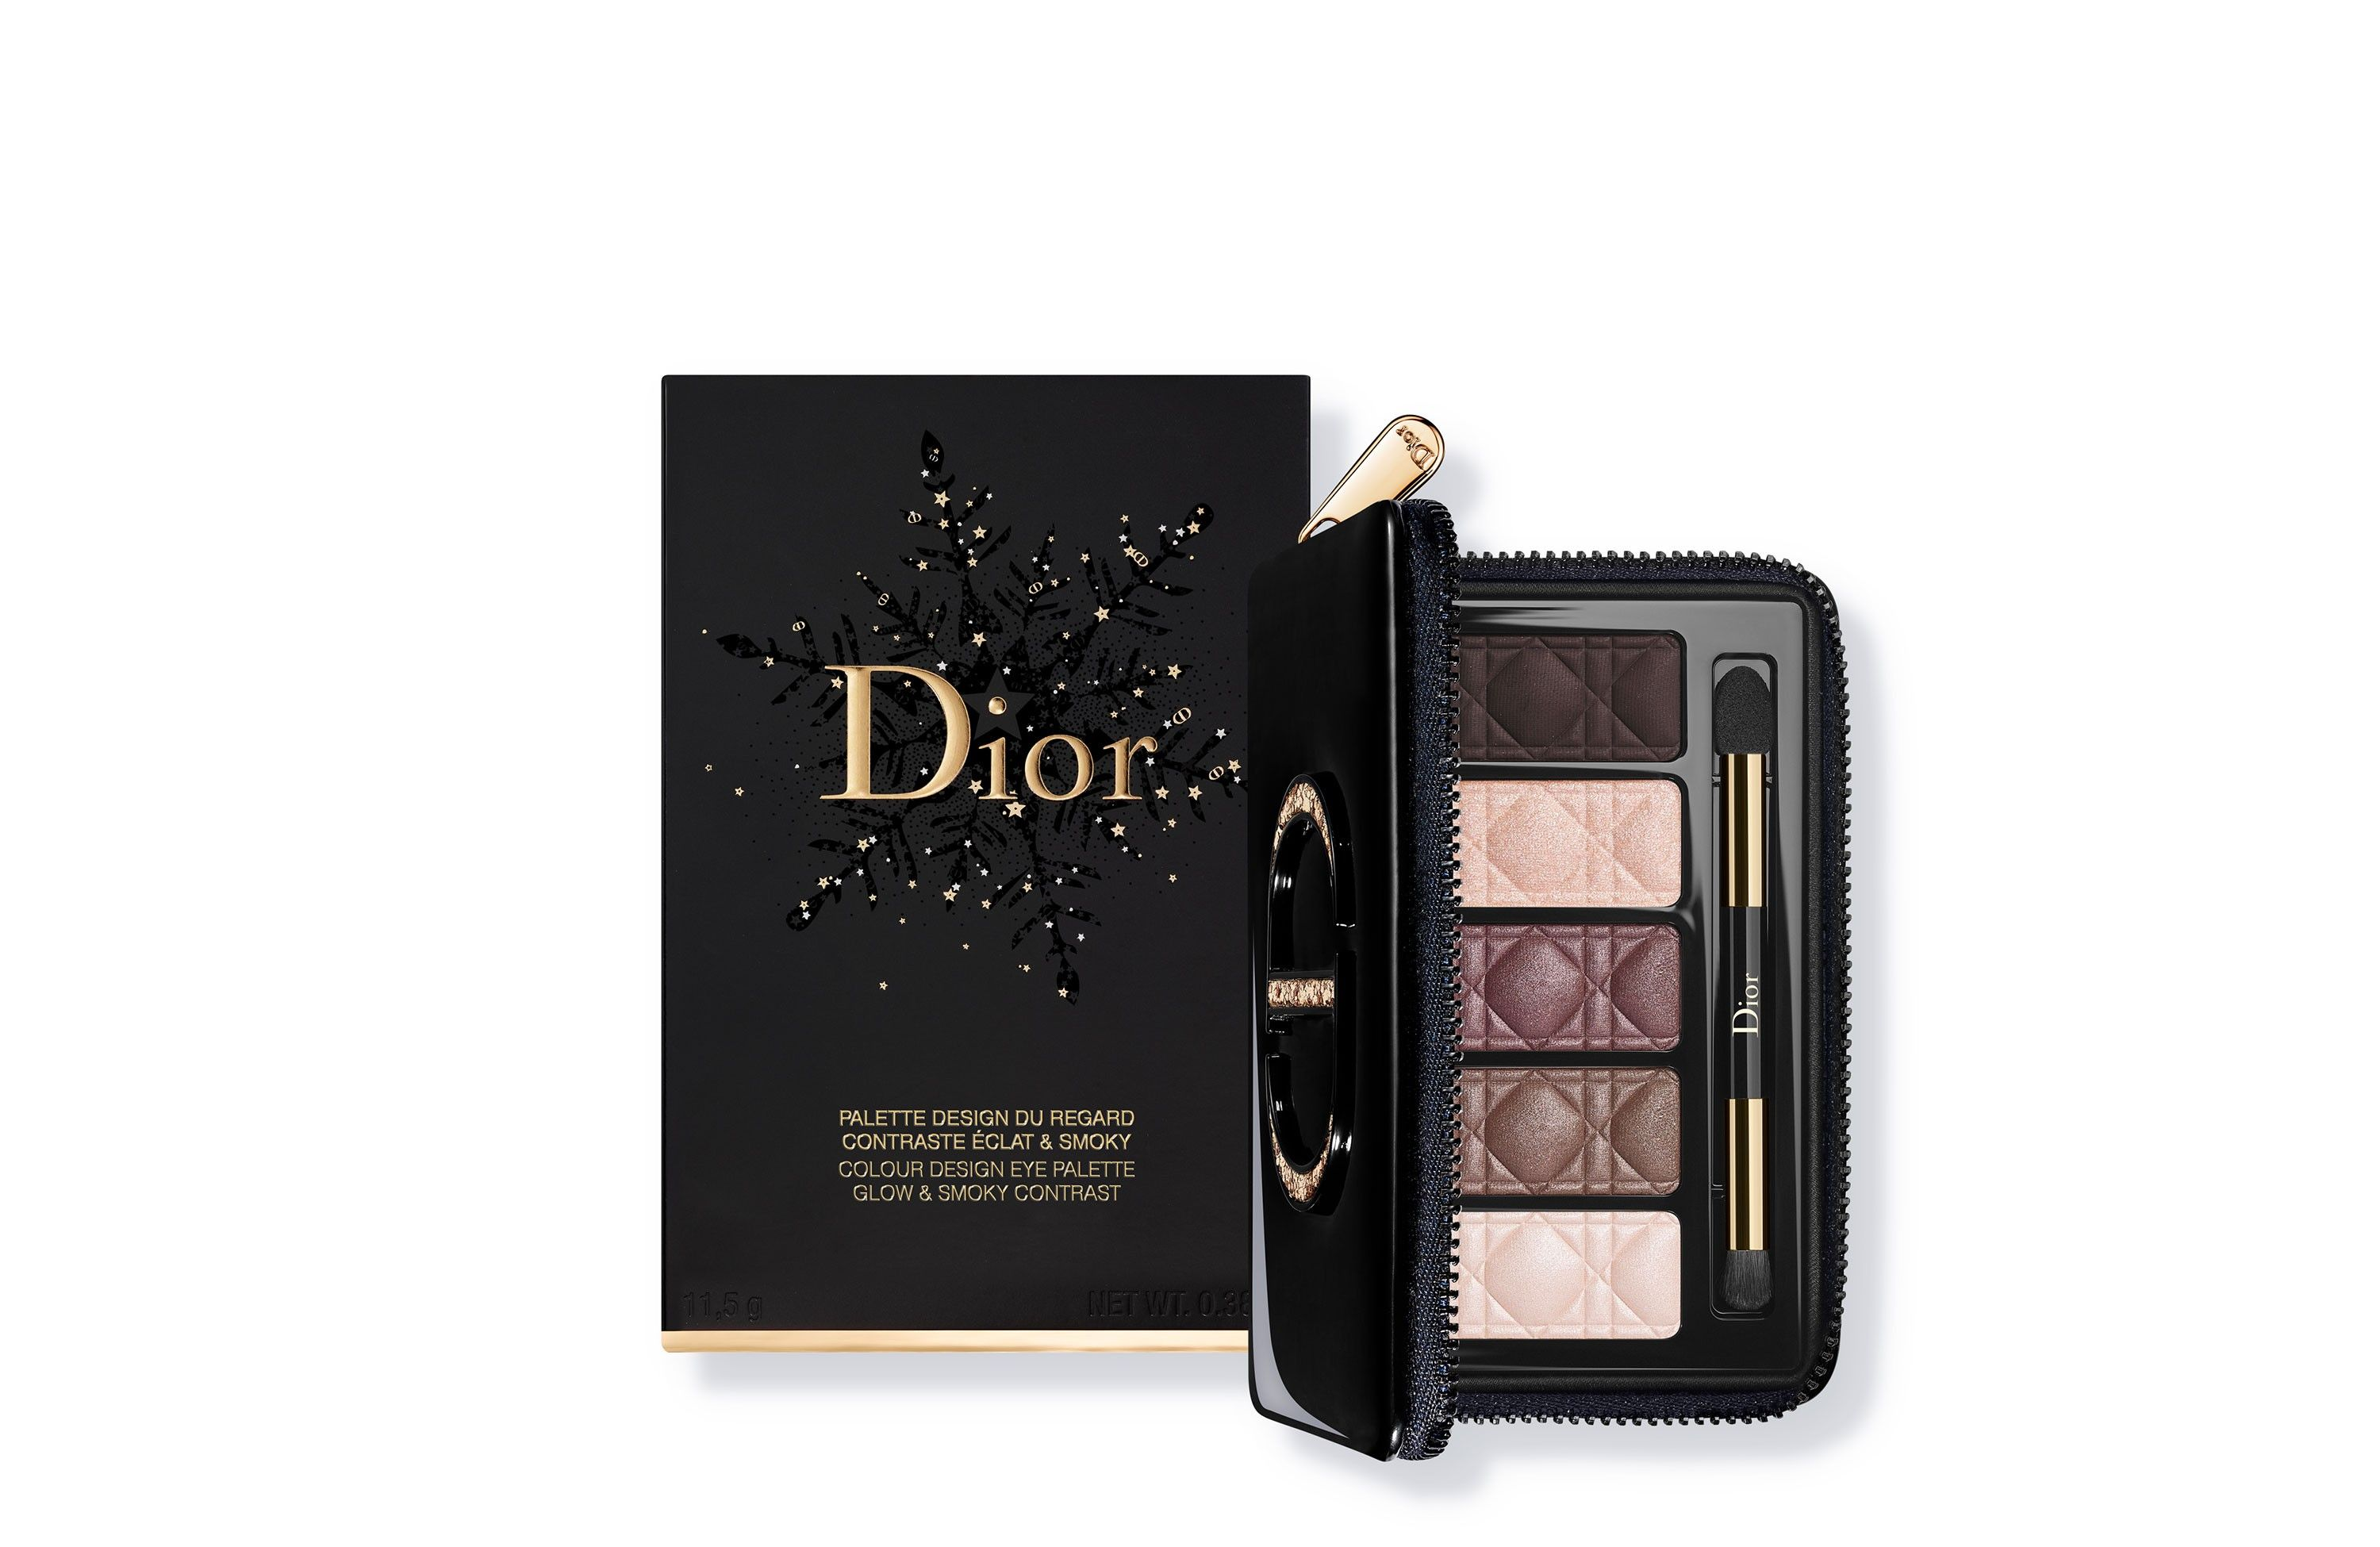 73ccbfe2377 Discover Colour Design Eye palette by Christian Dior available in Dior  official online store. Videos